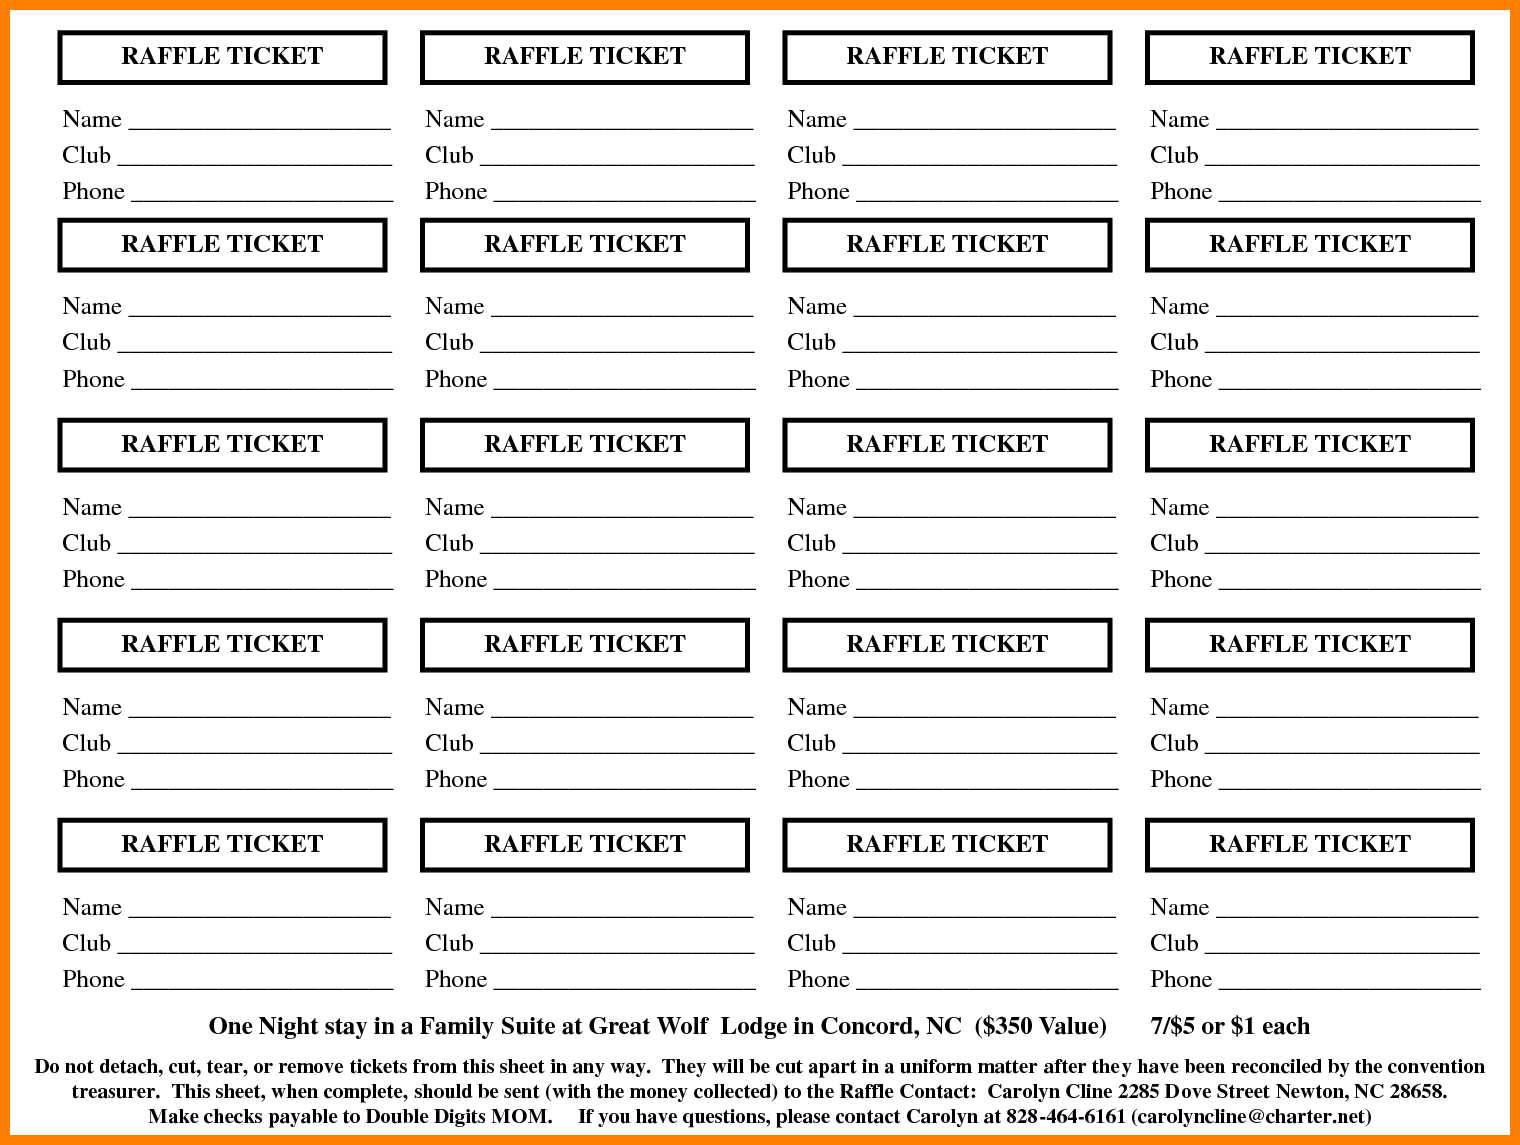 005 Printable Raffle Ticket Template Hola Klonec Co Print Out - Free Printable Raffle Ticket Template